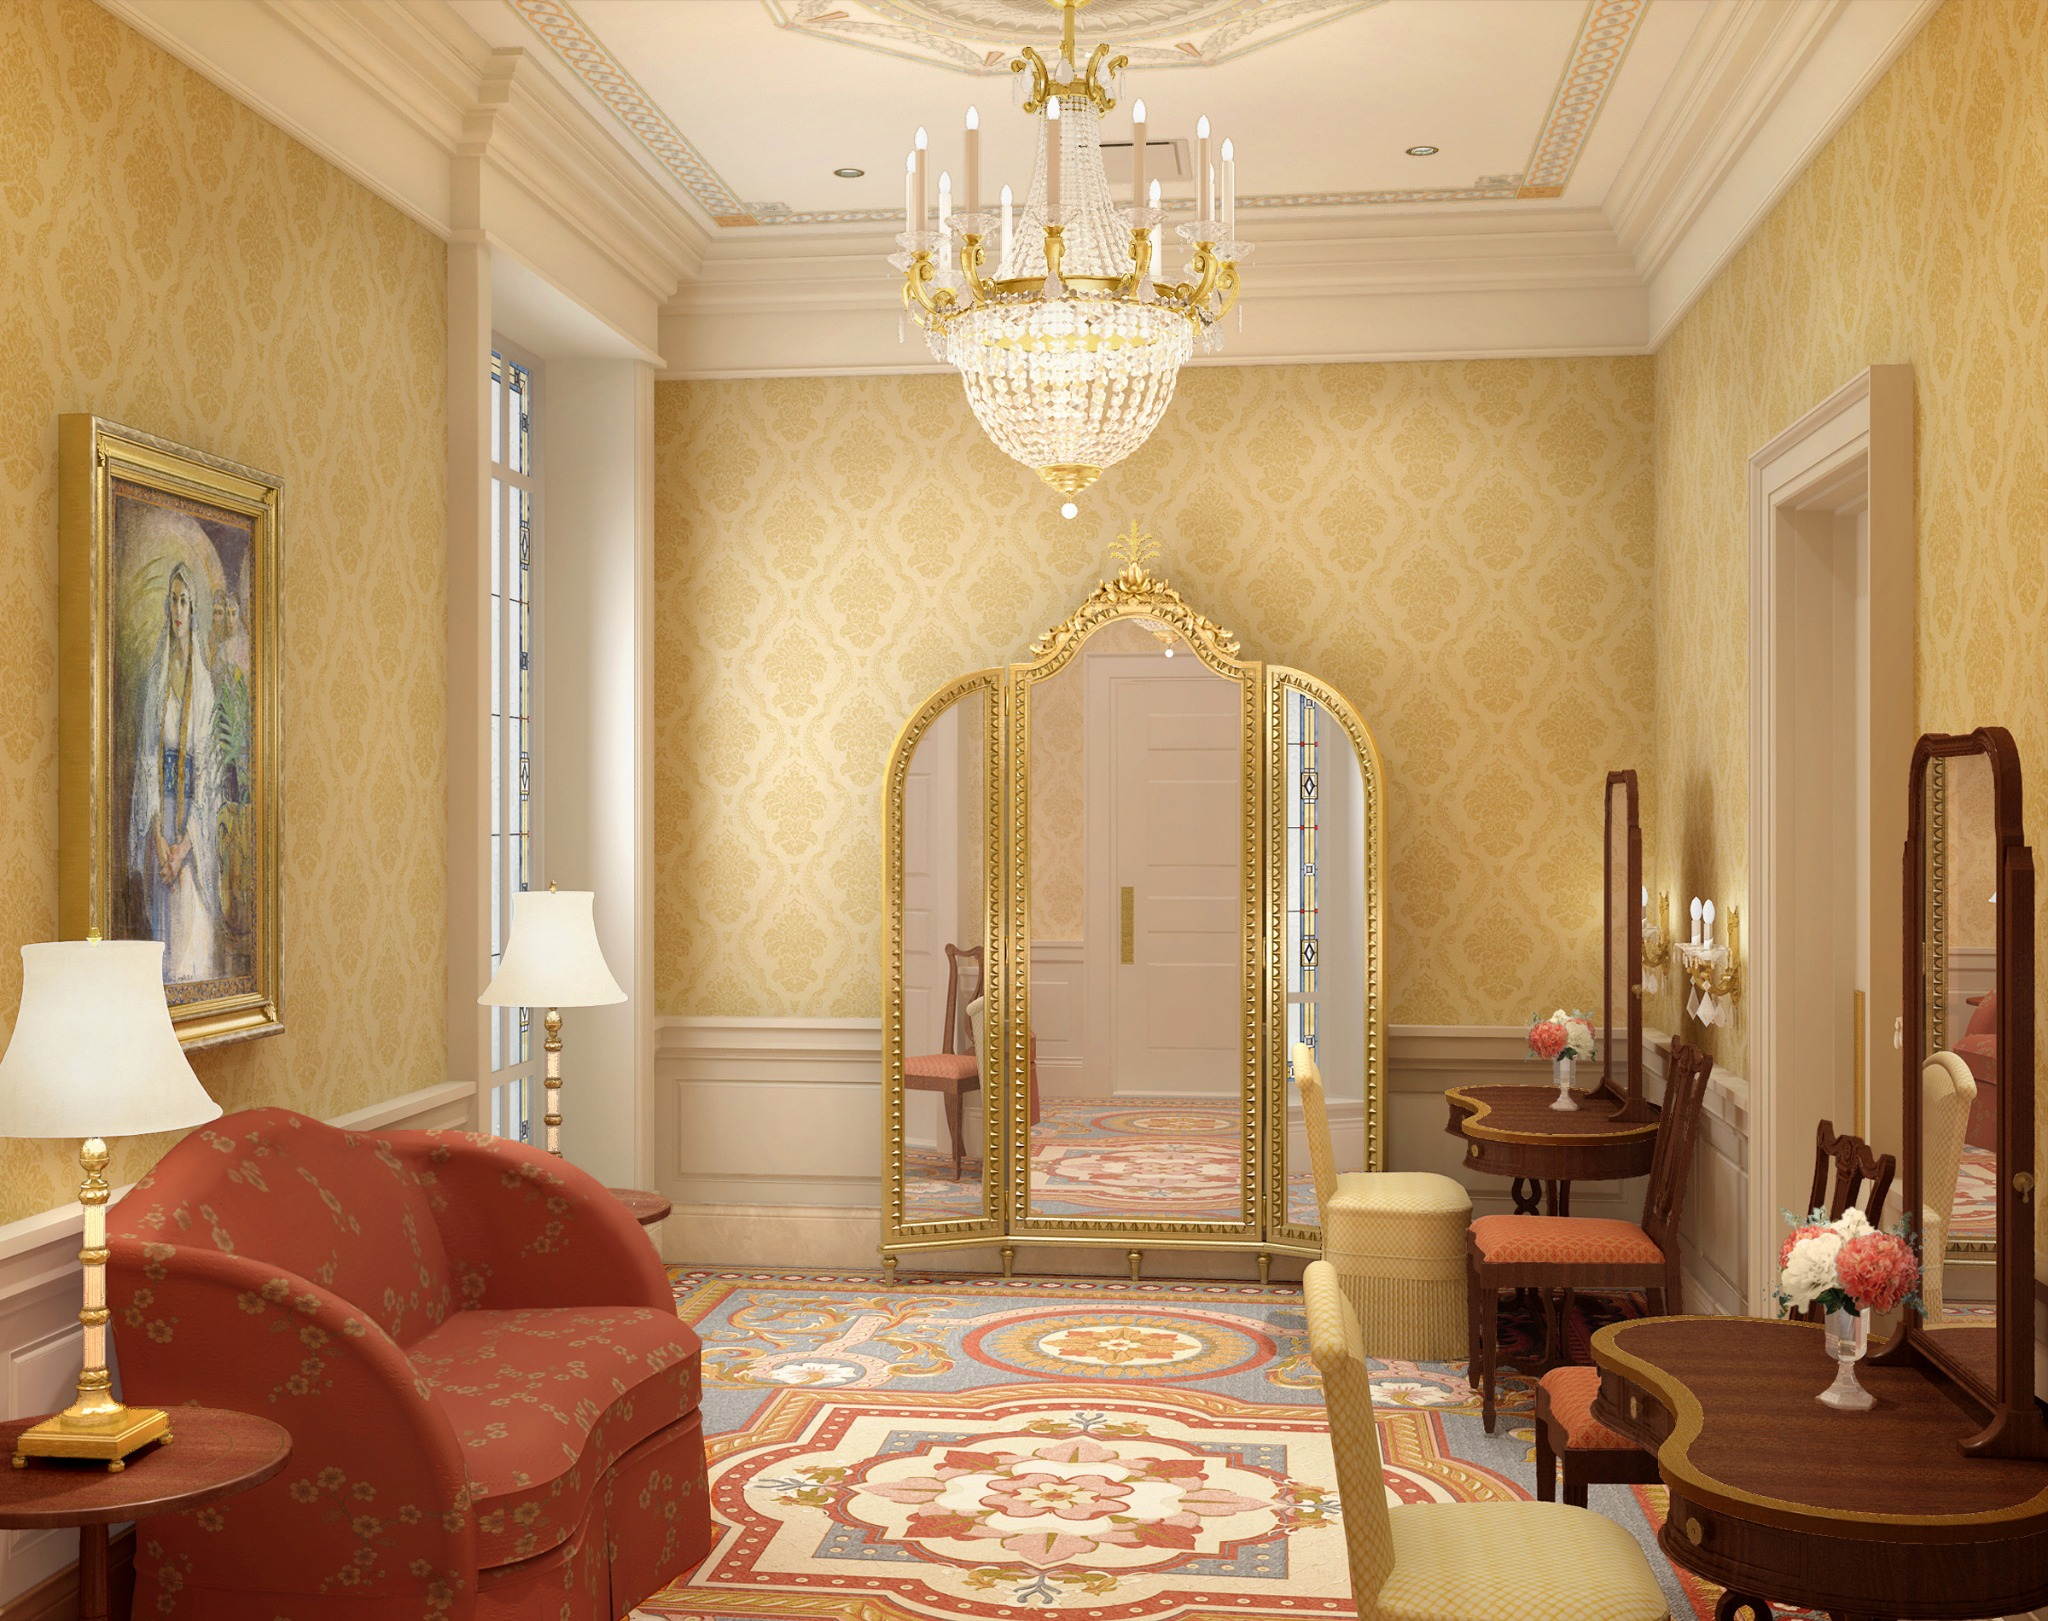 Rendering of the bride's room in the Richmond Virginia Temple